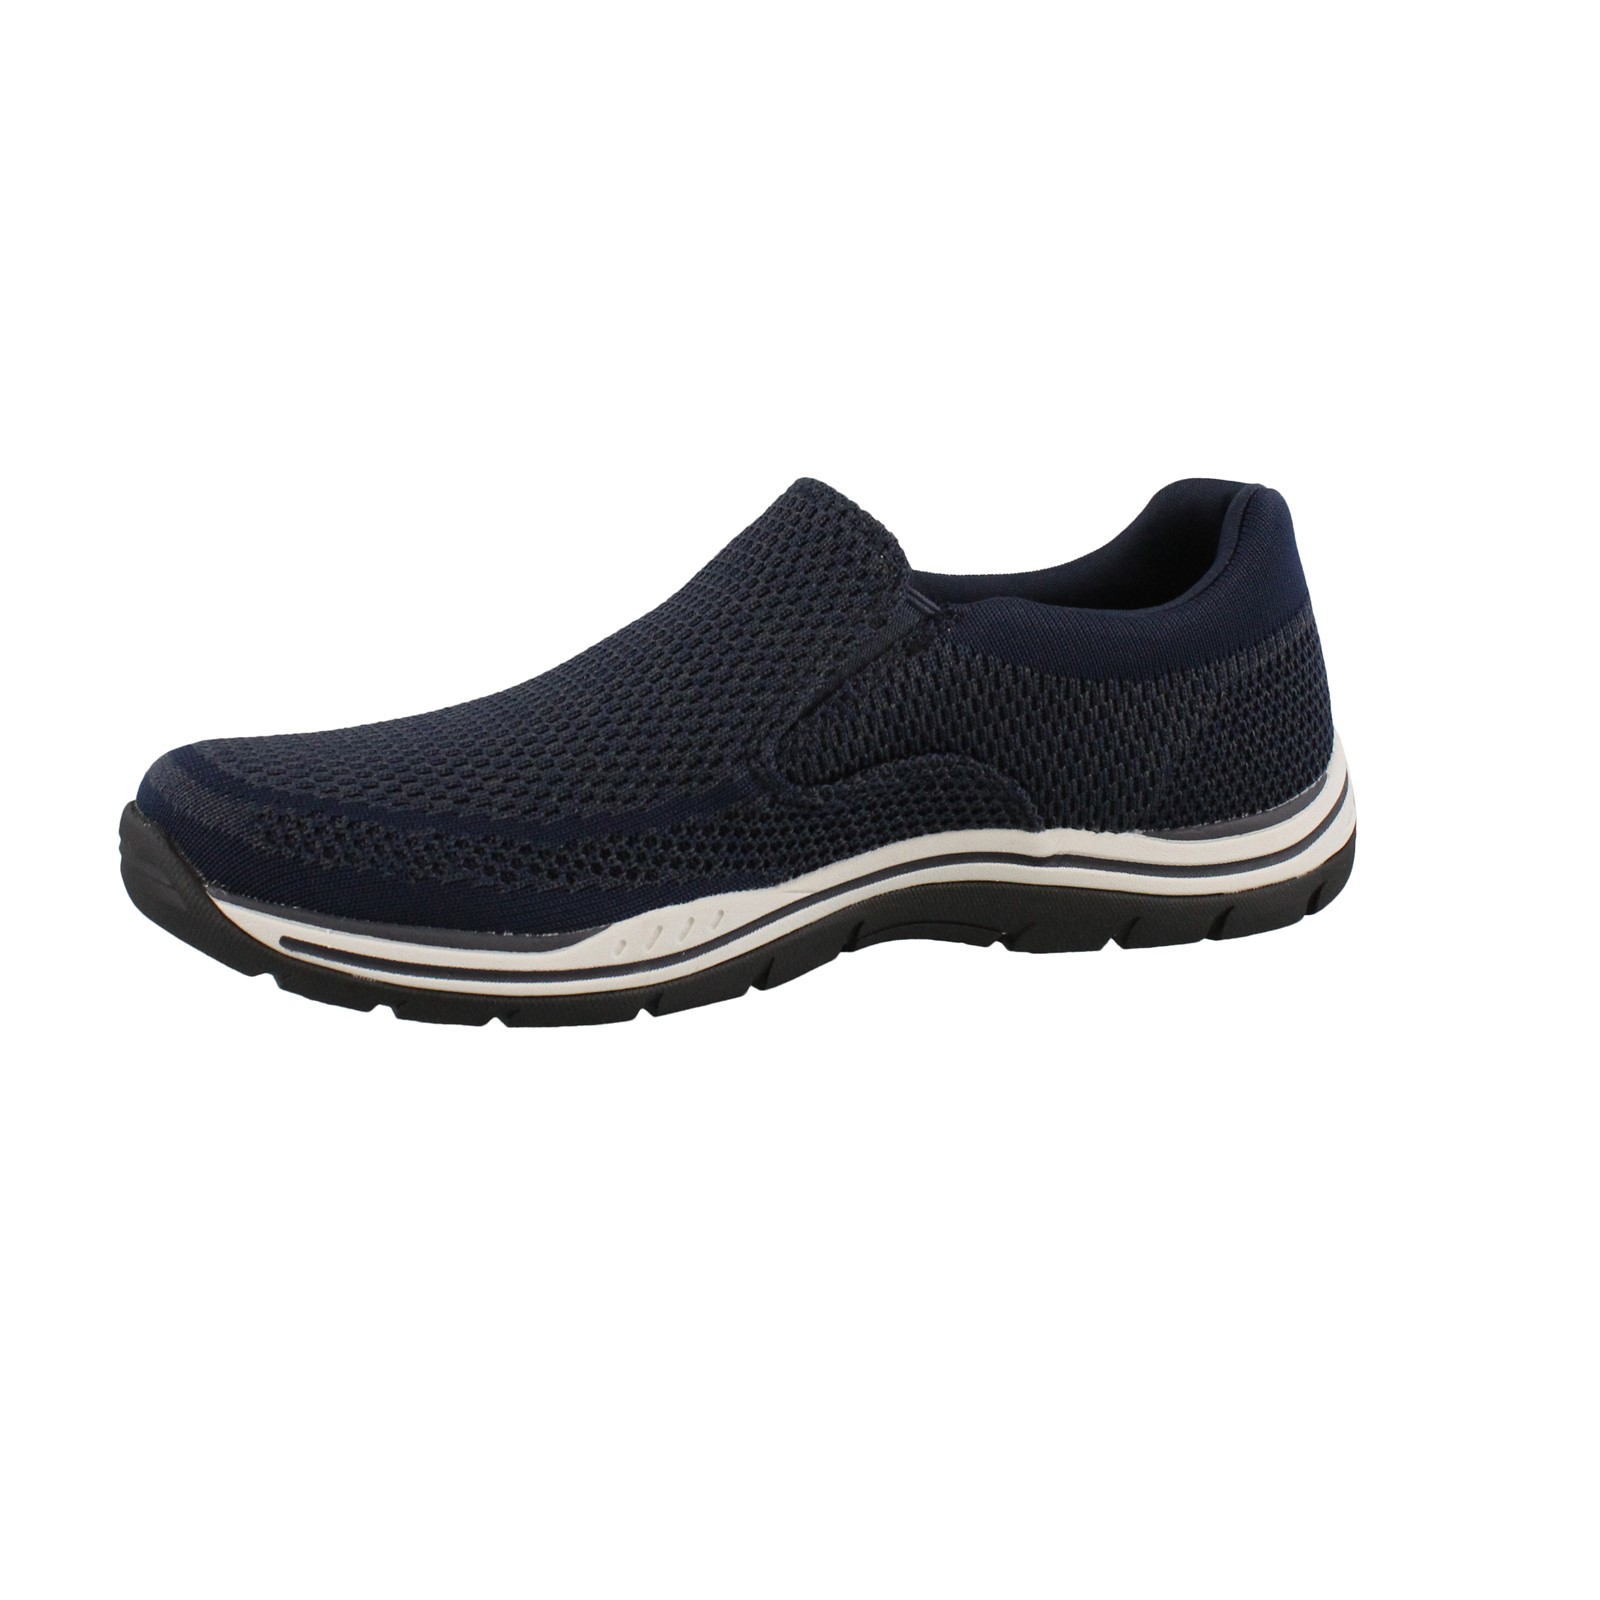 5404eef87b8 Next. add to favorites. Men s Skechers